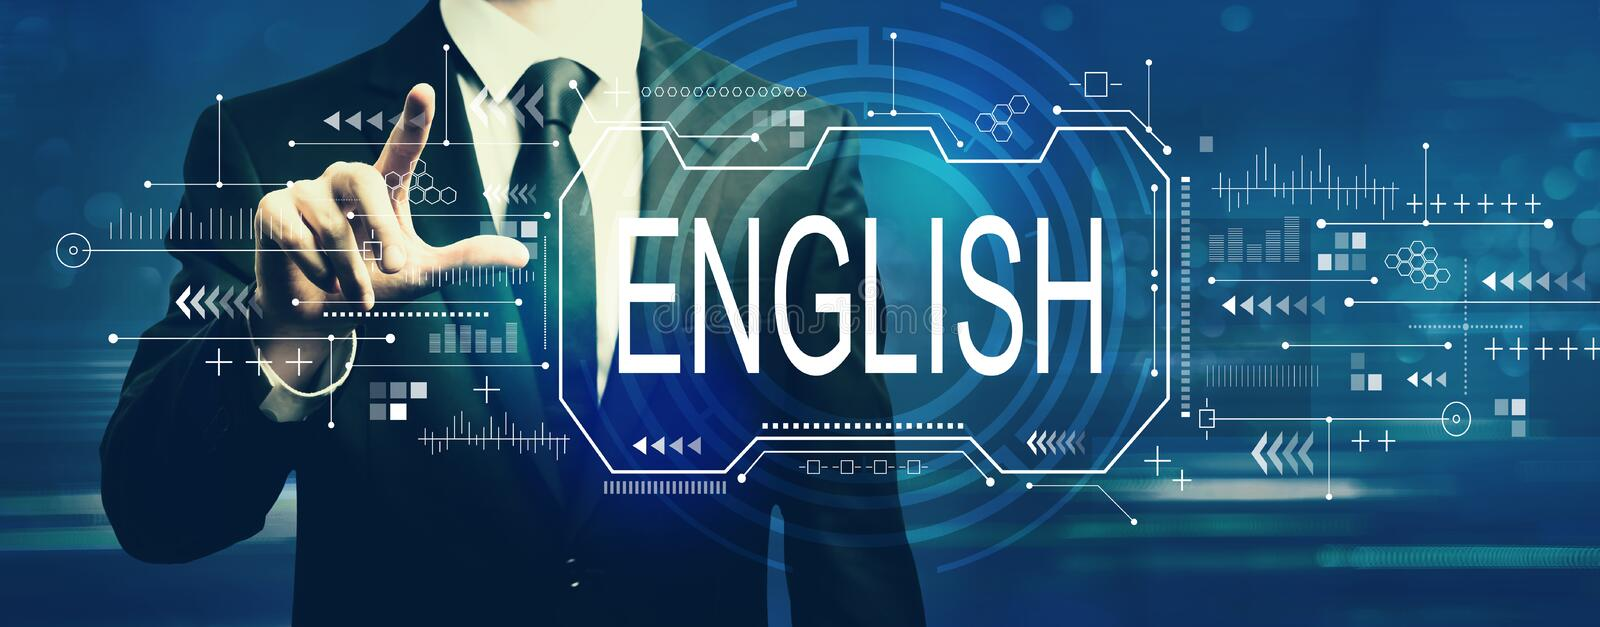 English concept with businessman royalty free stock photography